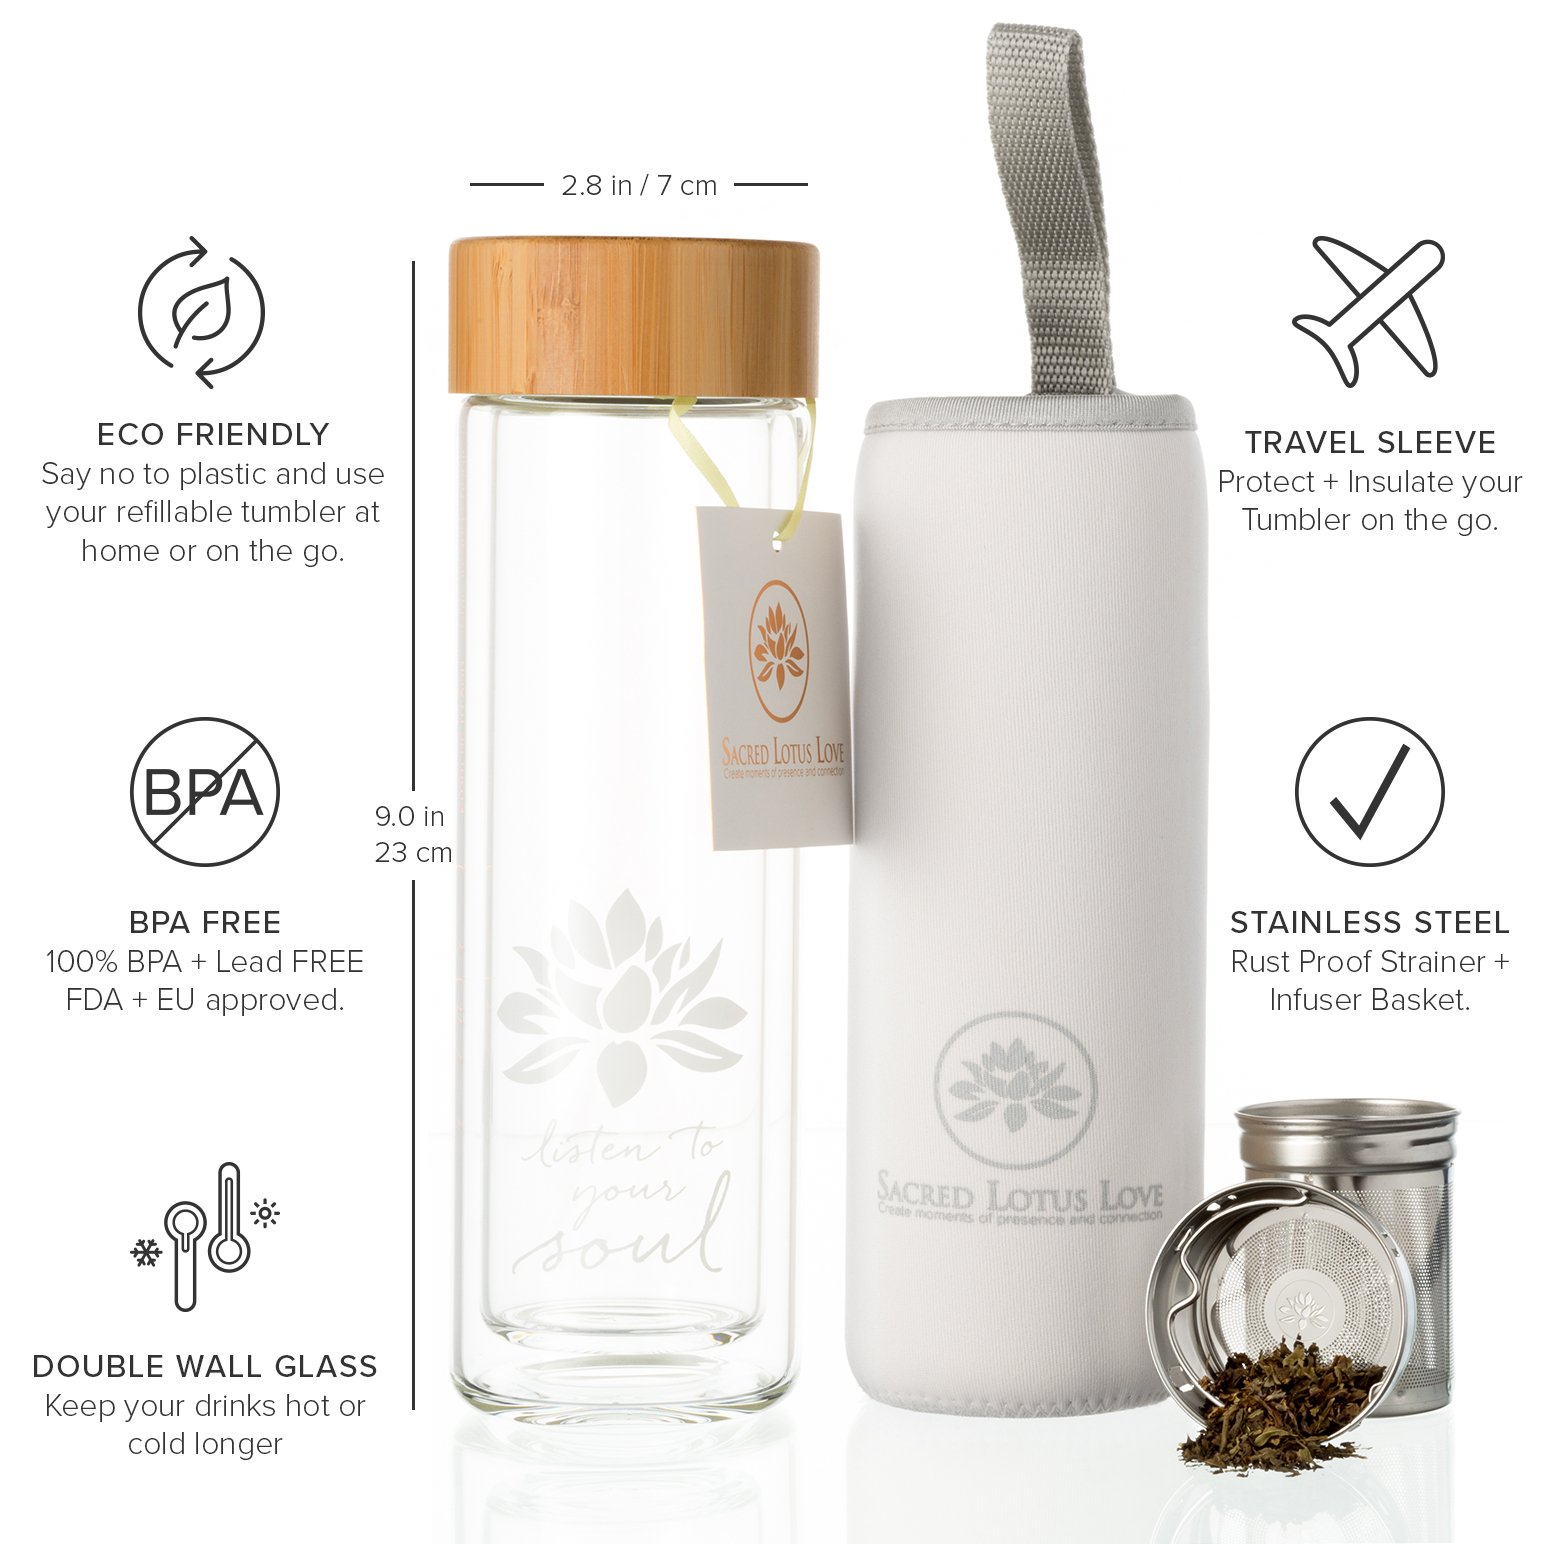 The Lotus Glass Tea Tumbler with Infuser + Strainer for Loose Leaf Tea, Coffee and Fruit Water. Inc Travel Sleeve. 15oz Bottle with Bamboo Lid. Perfect Gift. Soulful Design. Beautifully Packaged. by Sacred Lotus Love (Image #3)